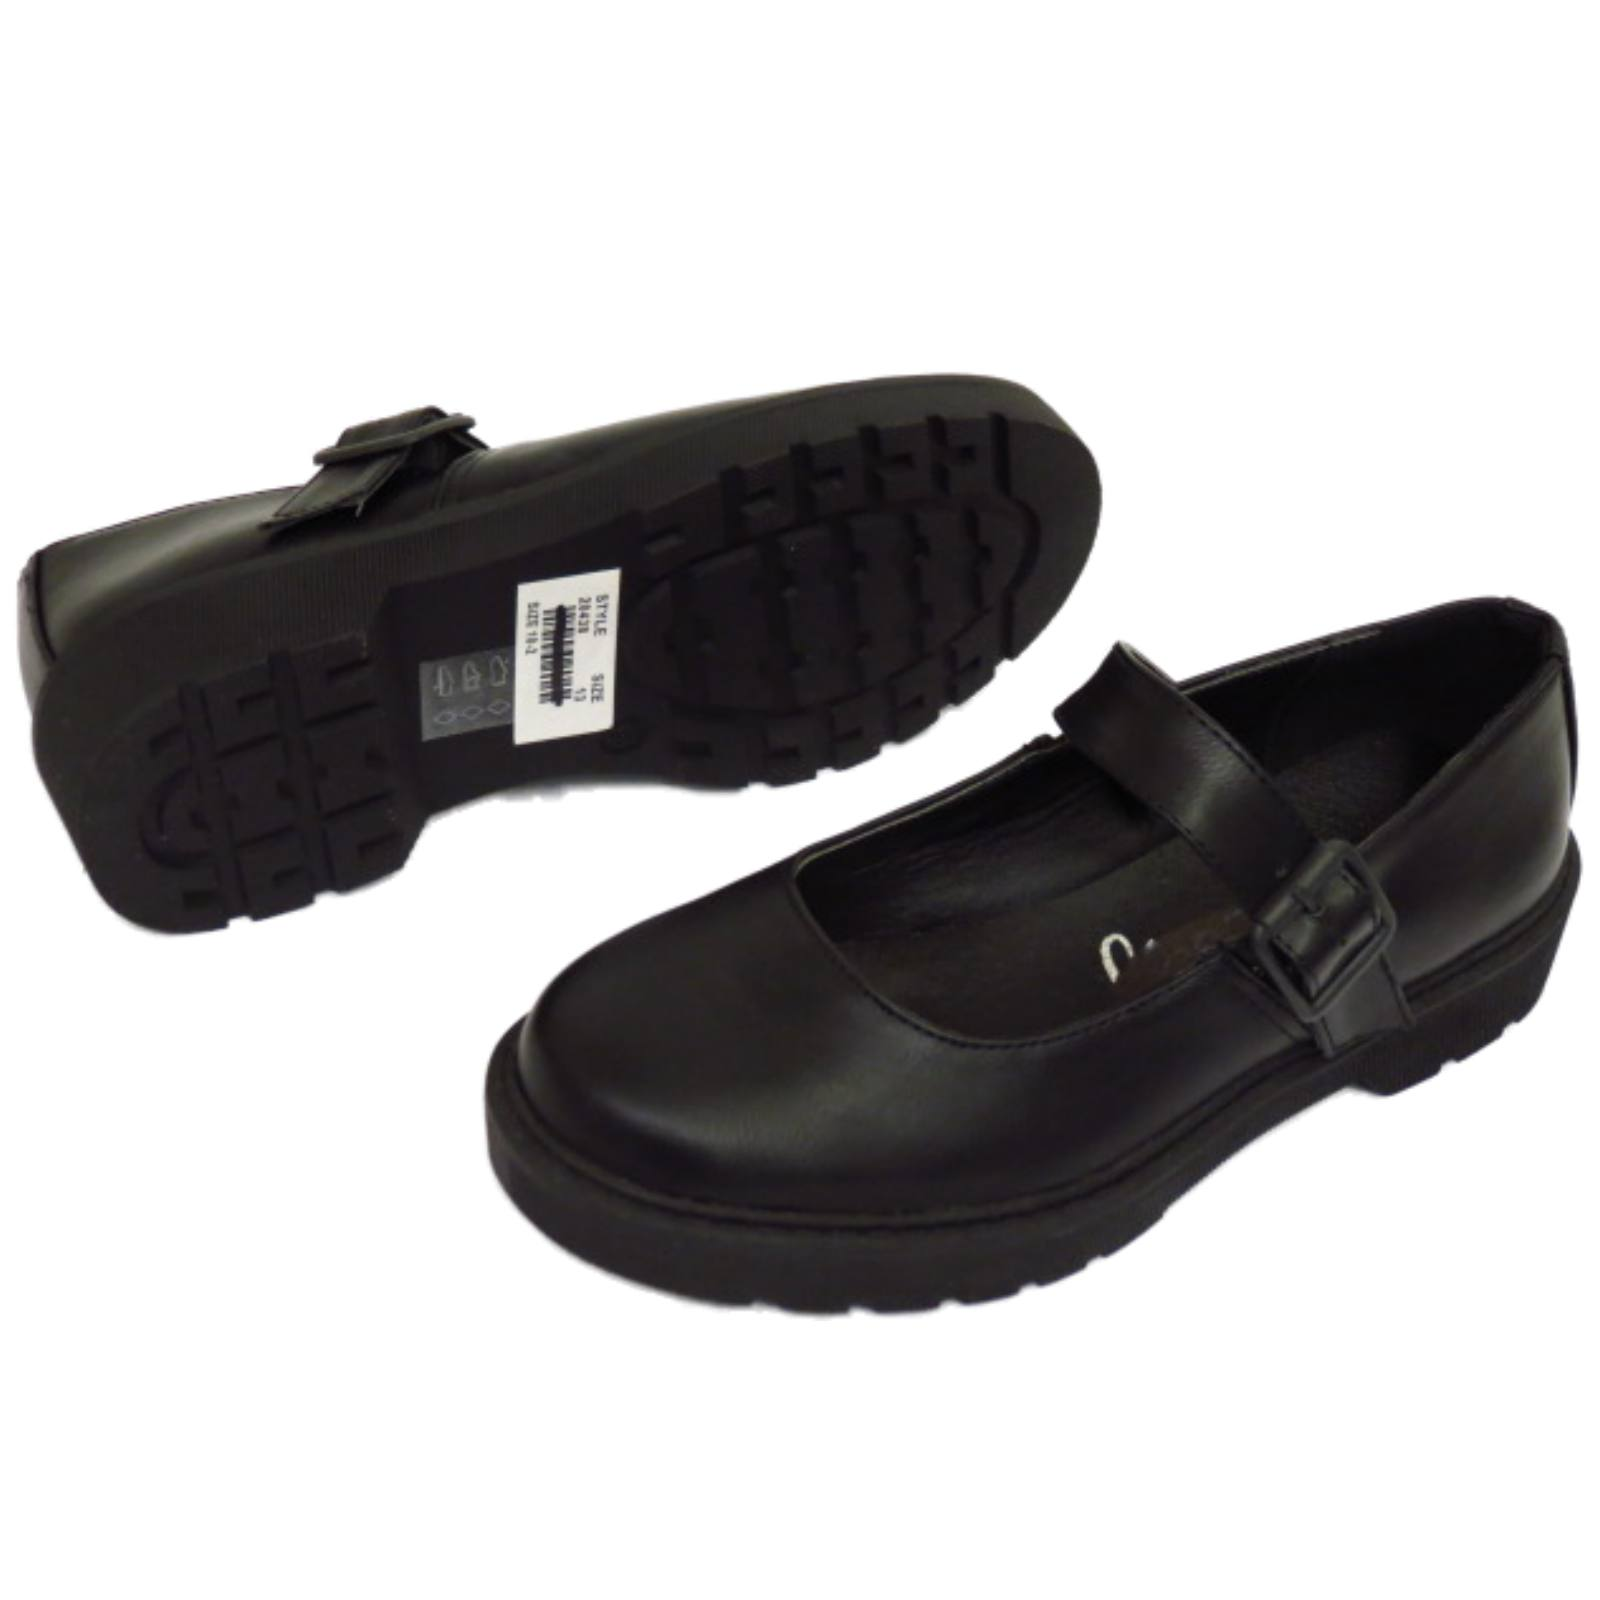 GIRLS-KIDS-CHILDRENS-BUCKLE-T-BAR-BLACK-SCHOOL-PUMPS-DOLLY-SMART-FLAT-SHOES-10-5 thumbnail 13